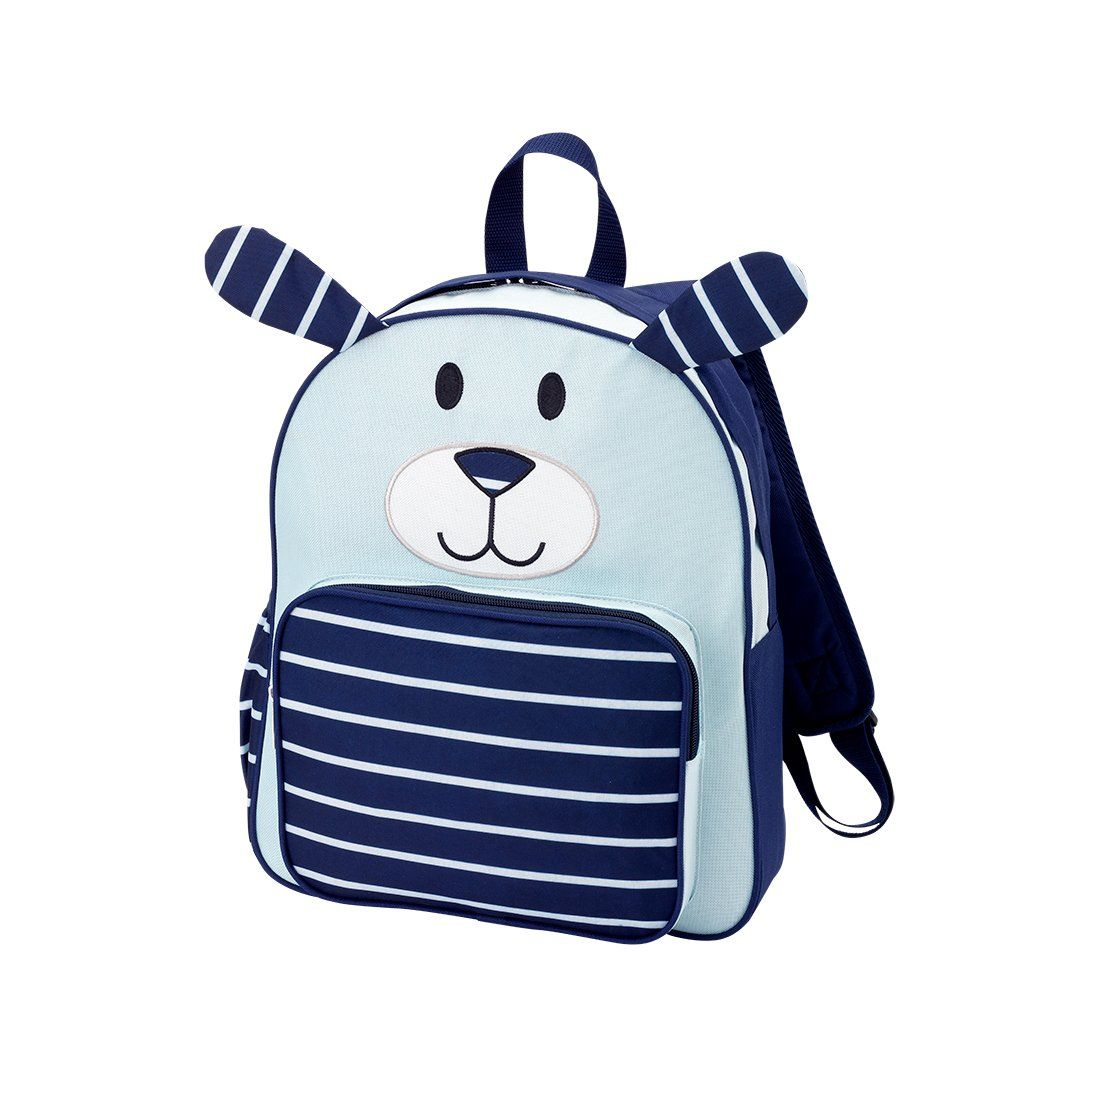 Navy Puppy Preschool Backpack - Personalized   New Items in